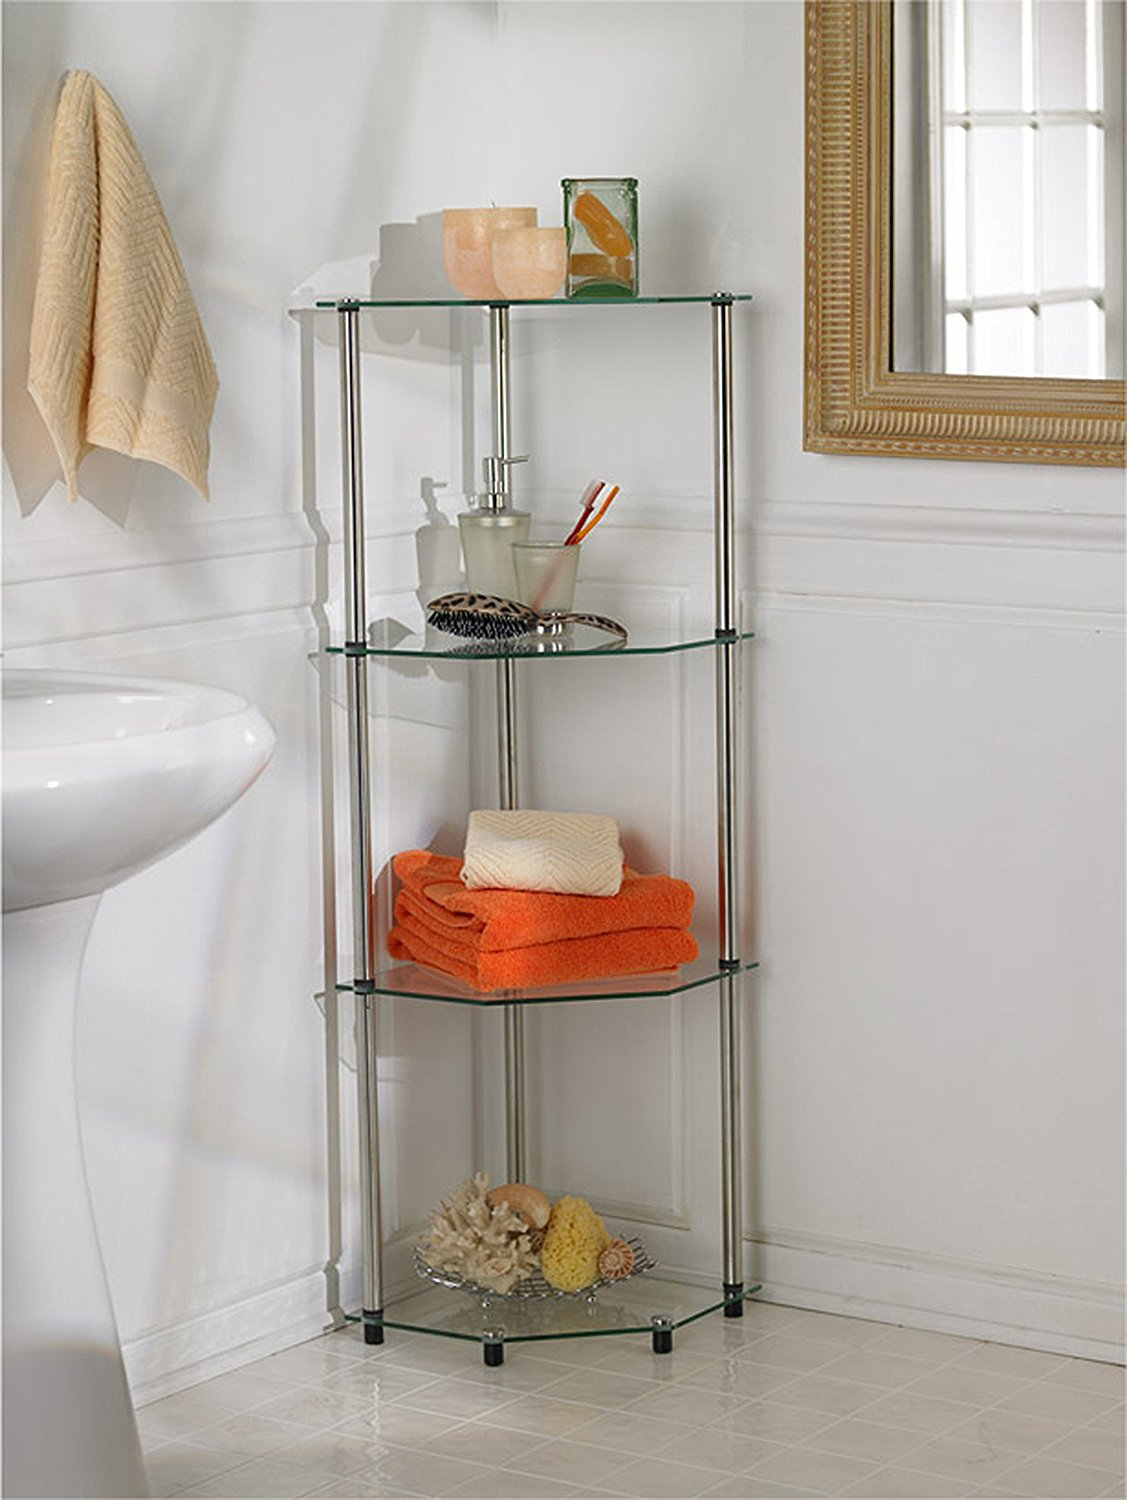 Perfect Slim Line 4 Tier Bathroom Storage Rack  Chrome  1600533 At Victorian